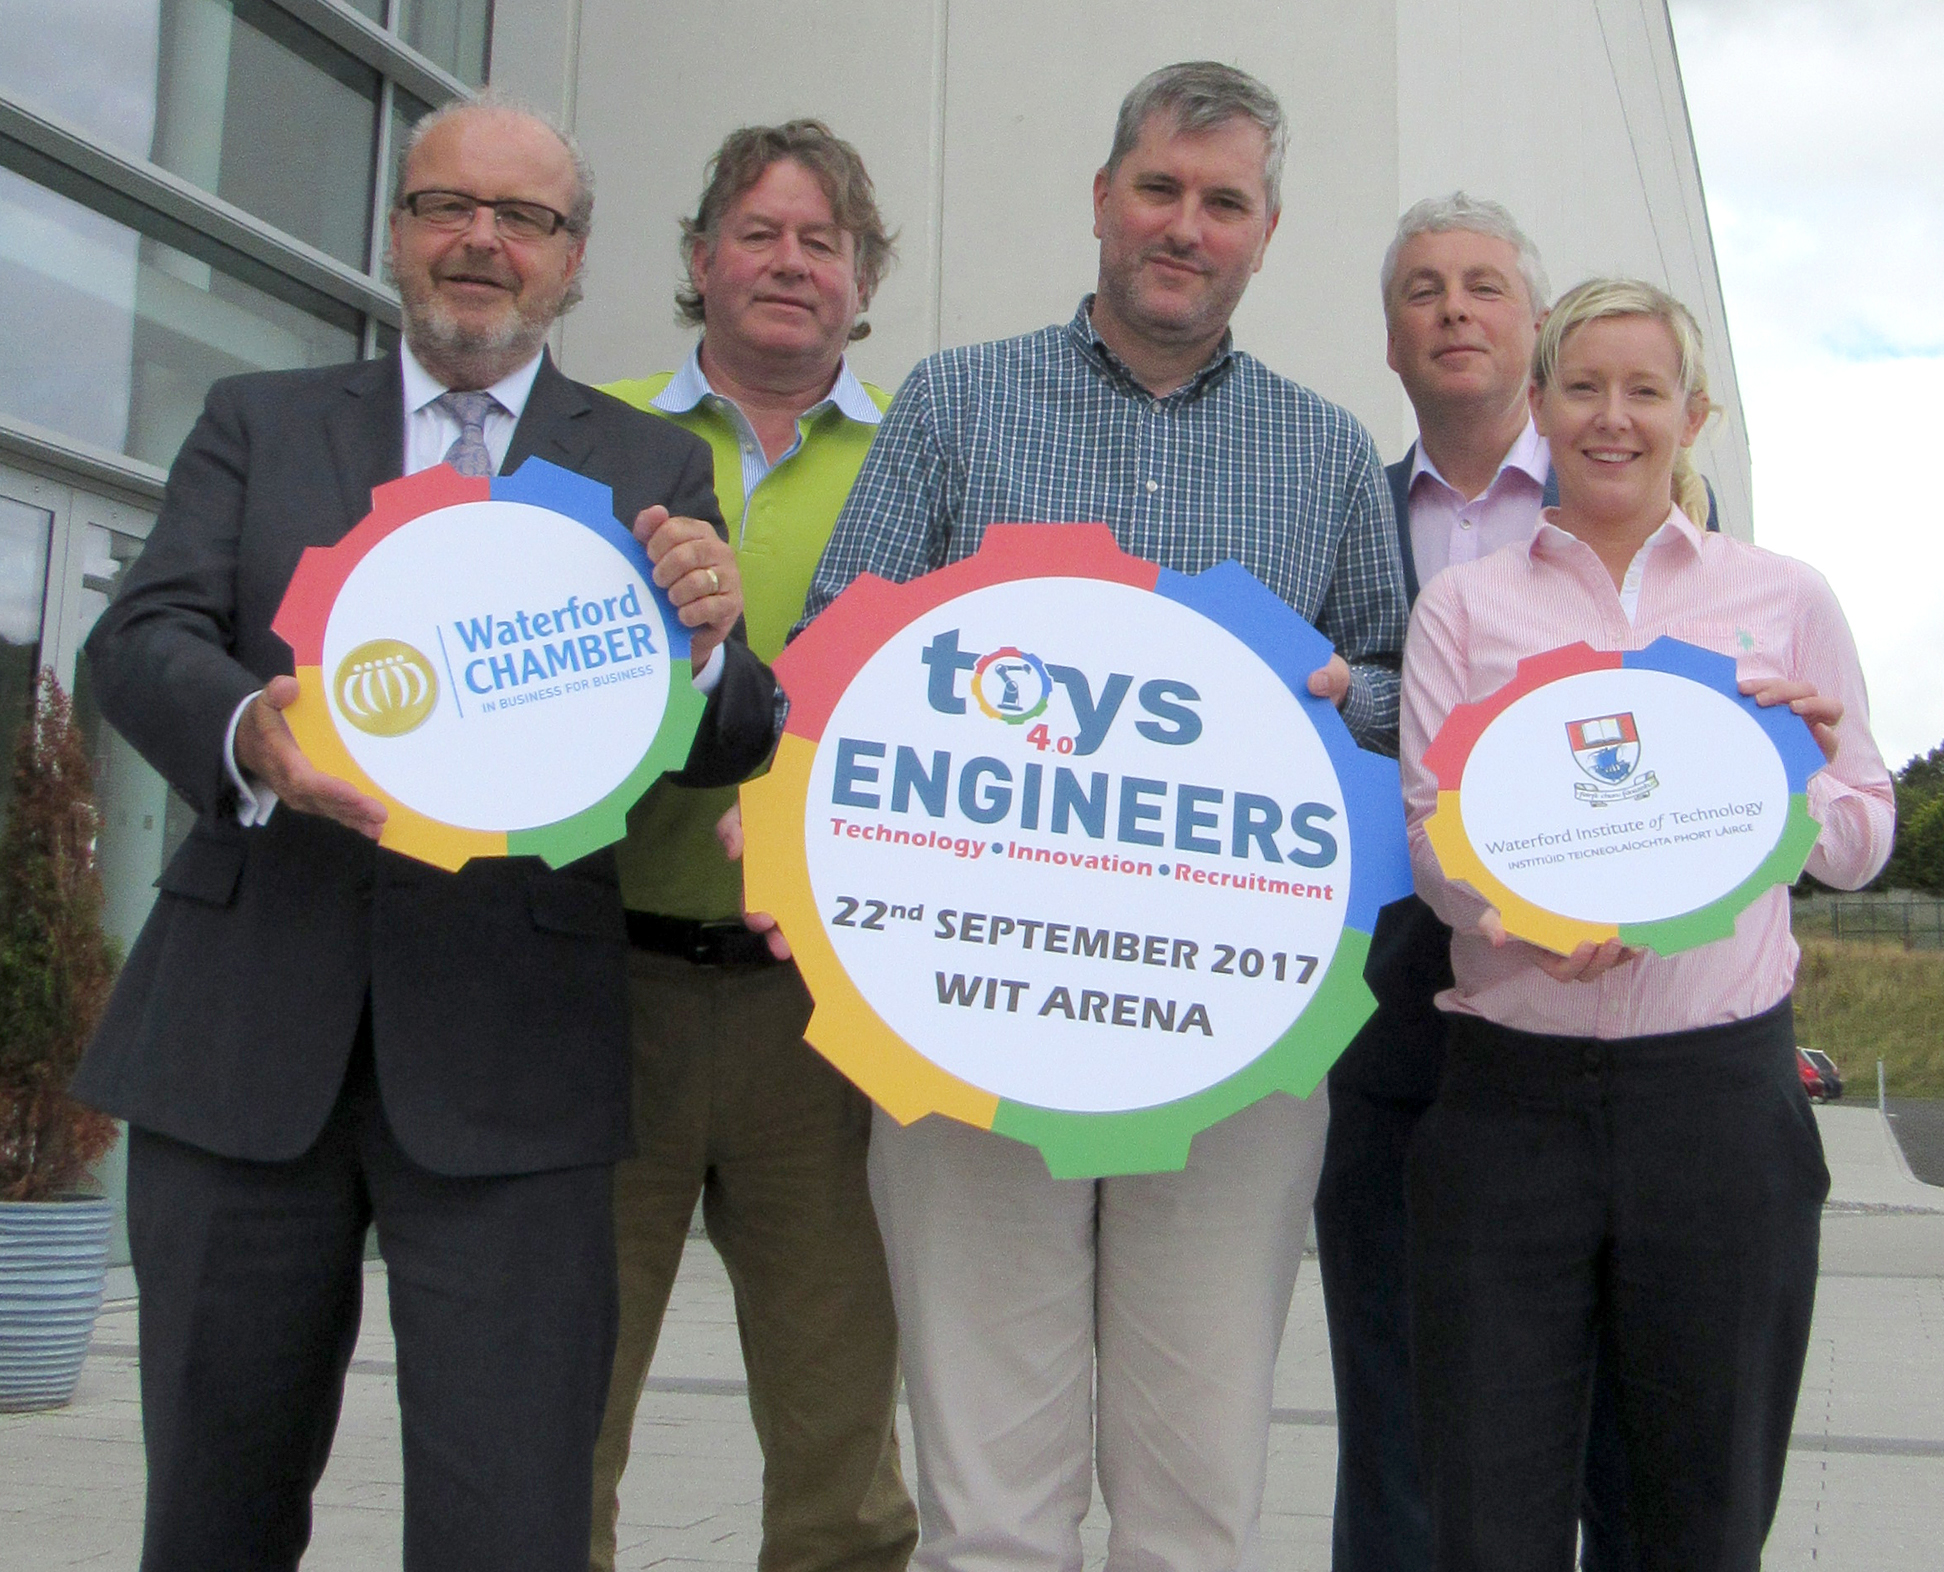 Pictured at WIT Arena are Gerald Hurley, Waterford Chamber CEO; Niall Griffin, Metalman Engineering; Laurent Borla, Senantra Ltd.; Dr Ken Thomas, Head of School of Engineering at WIT and Donna Drohan, WIT Arena.